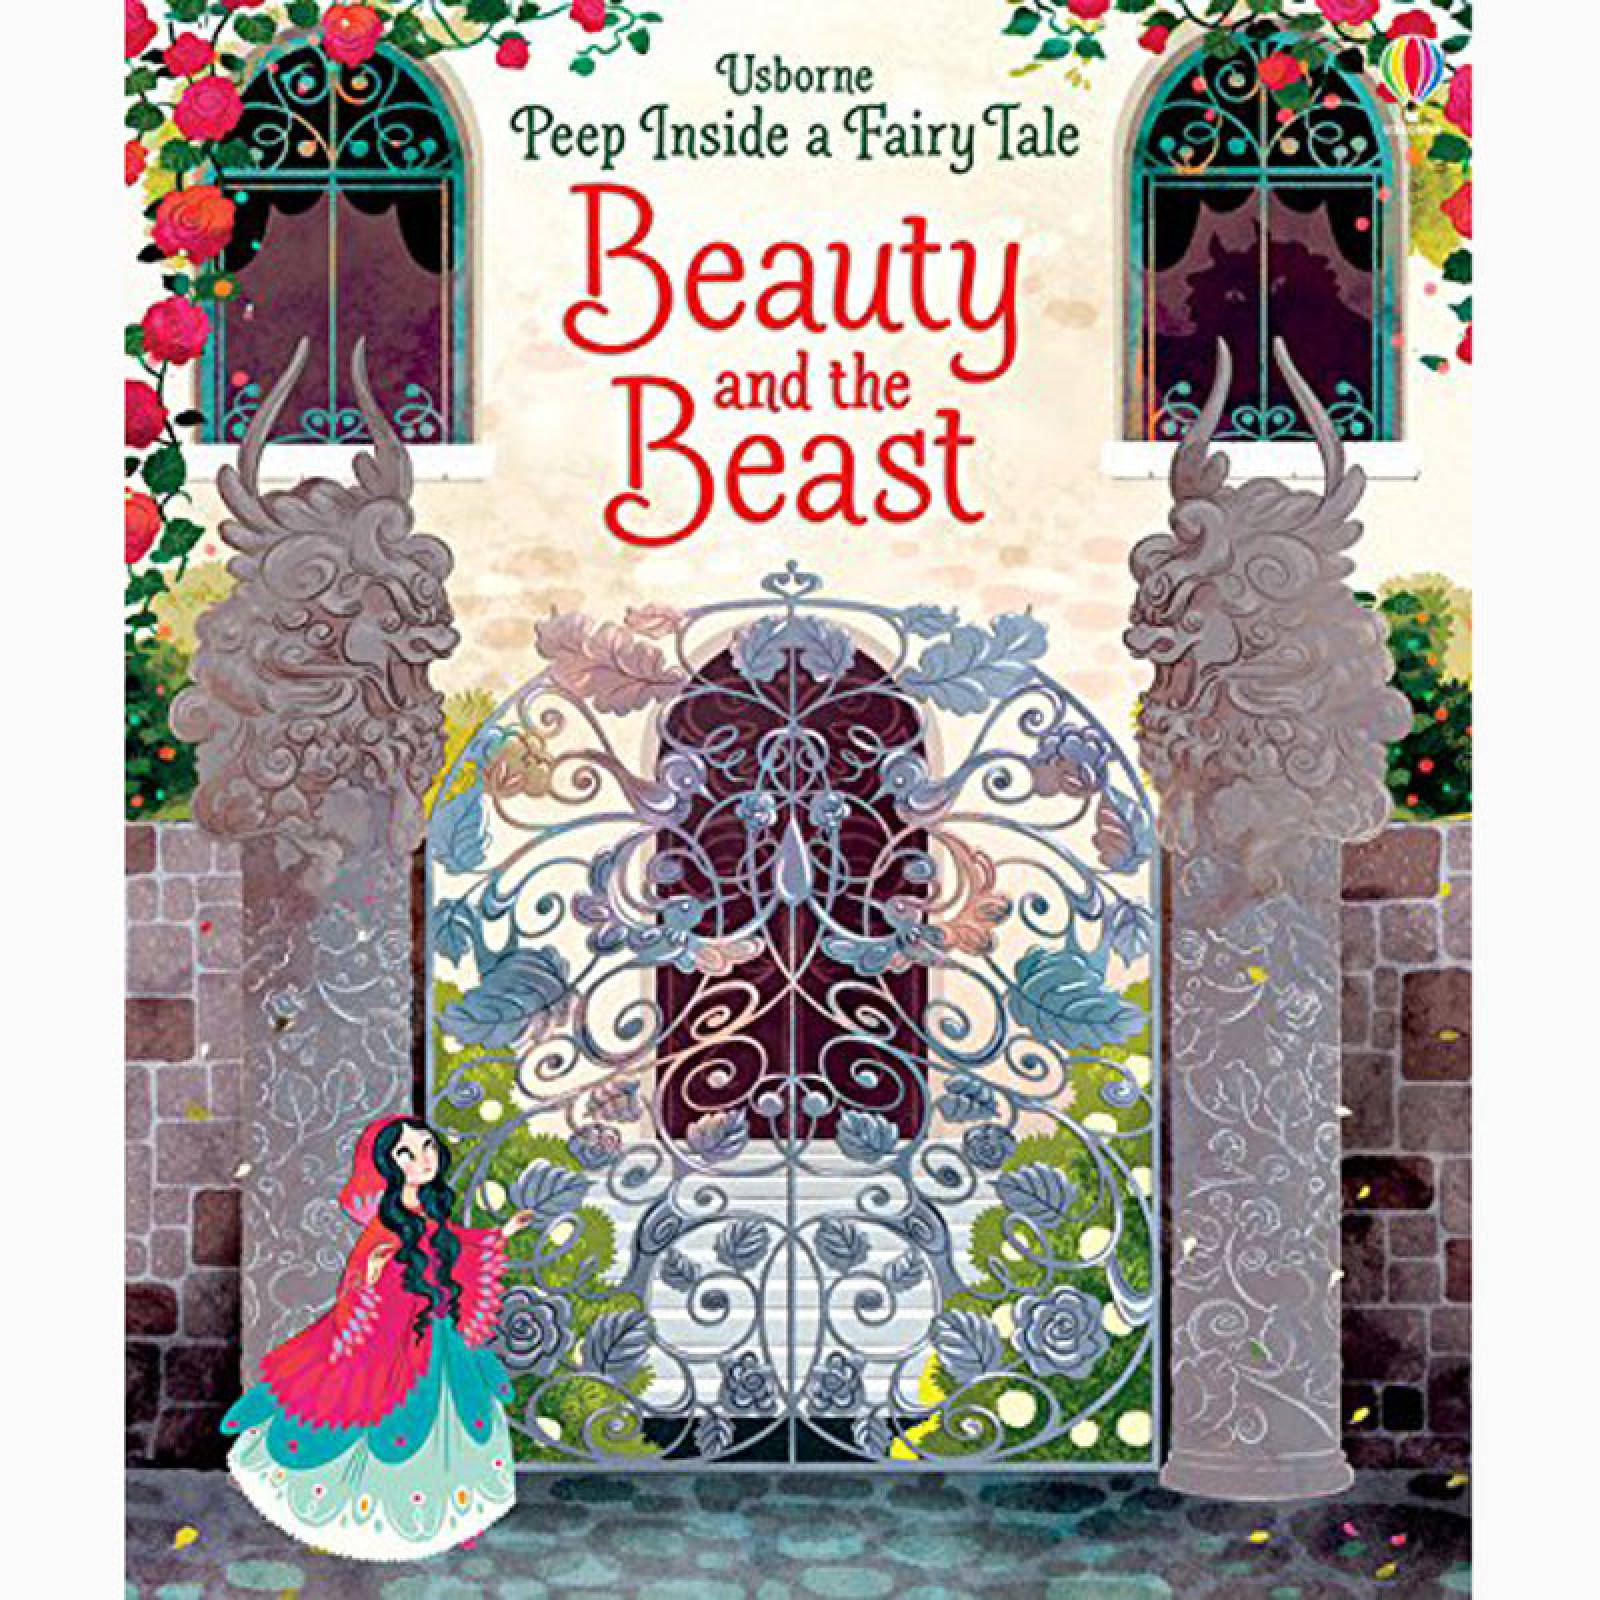 Beauty And The Beast (Peep Inside A Fairy Tale) Book thumbnails